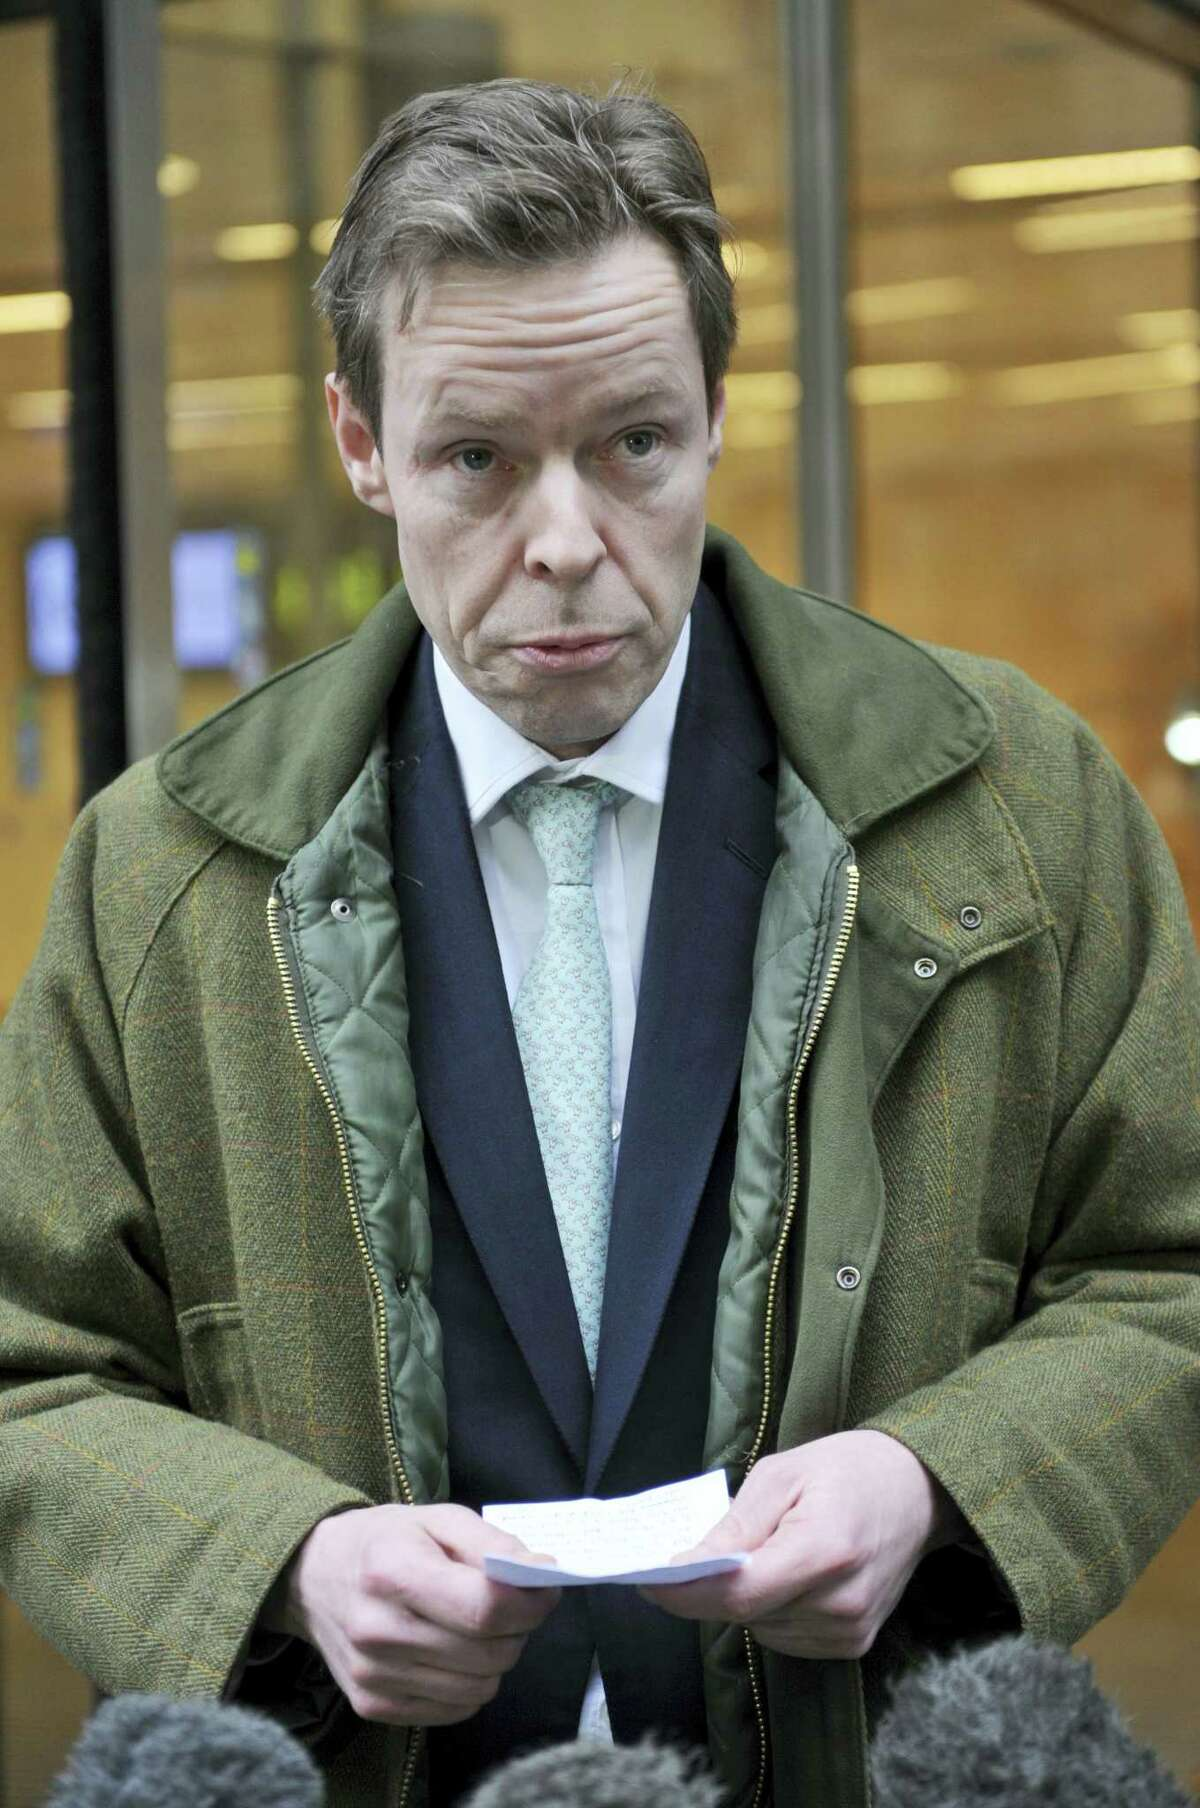 George Bingham, the only son of missing peer Lord Lucan, speaks to the media outside the High Court in London, where he was granted a death certificate by a High Court judge Wednesday Feb. 3, 2016. The only son of the notorious Lord Lucan, who has been missing since 1974 when a woman was found dead in his home, has been granted a death certificate in his father's case.